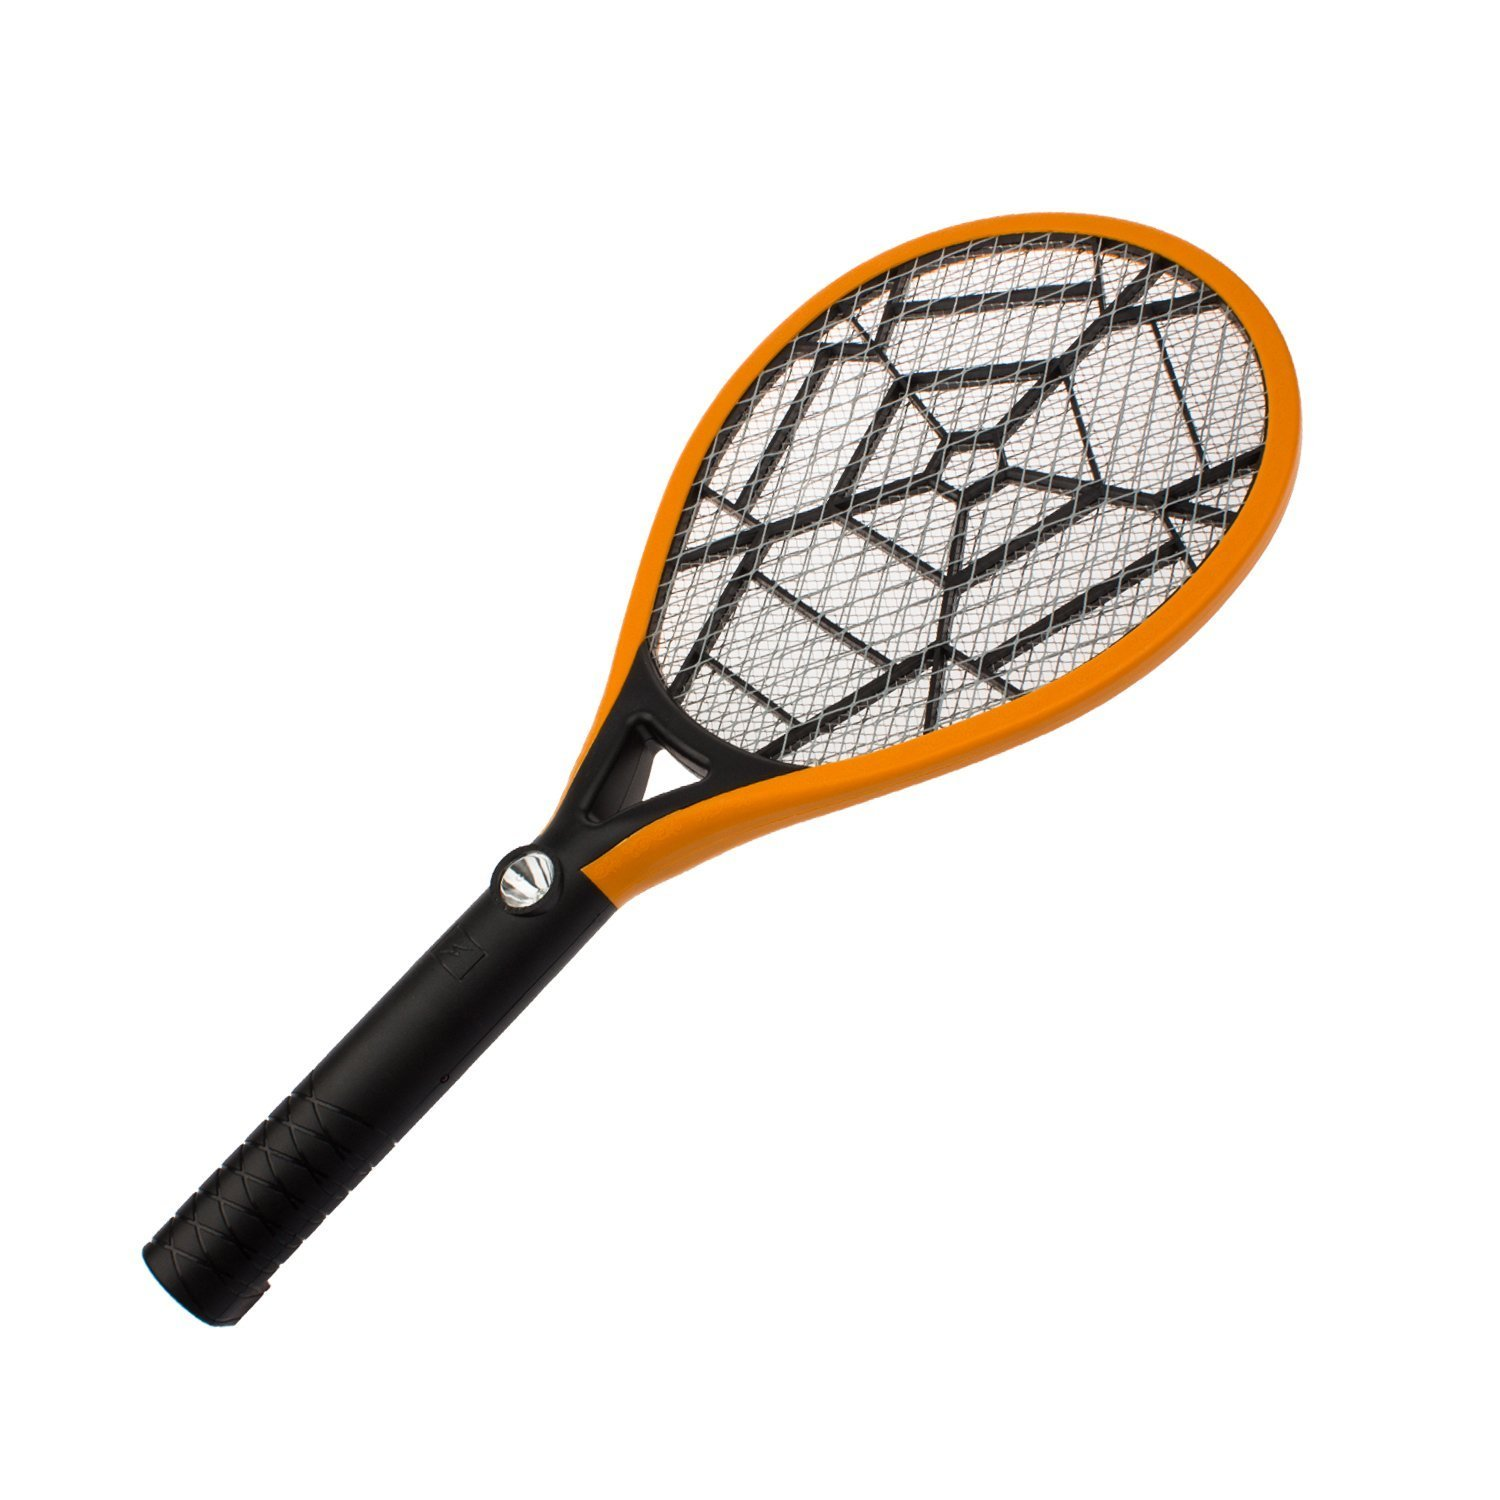 HOMEE Bug Zapper-Electric Fly Swatter, Rechargeable Mosquito, Fly Killer, Racket 2300 Volts Super Bright LED Light to Zap in the Dark, Built- in US Plug & 3-Layer Mesh Safe to Touch-Yellow